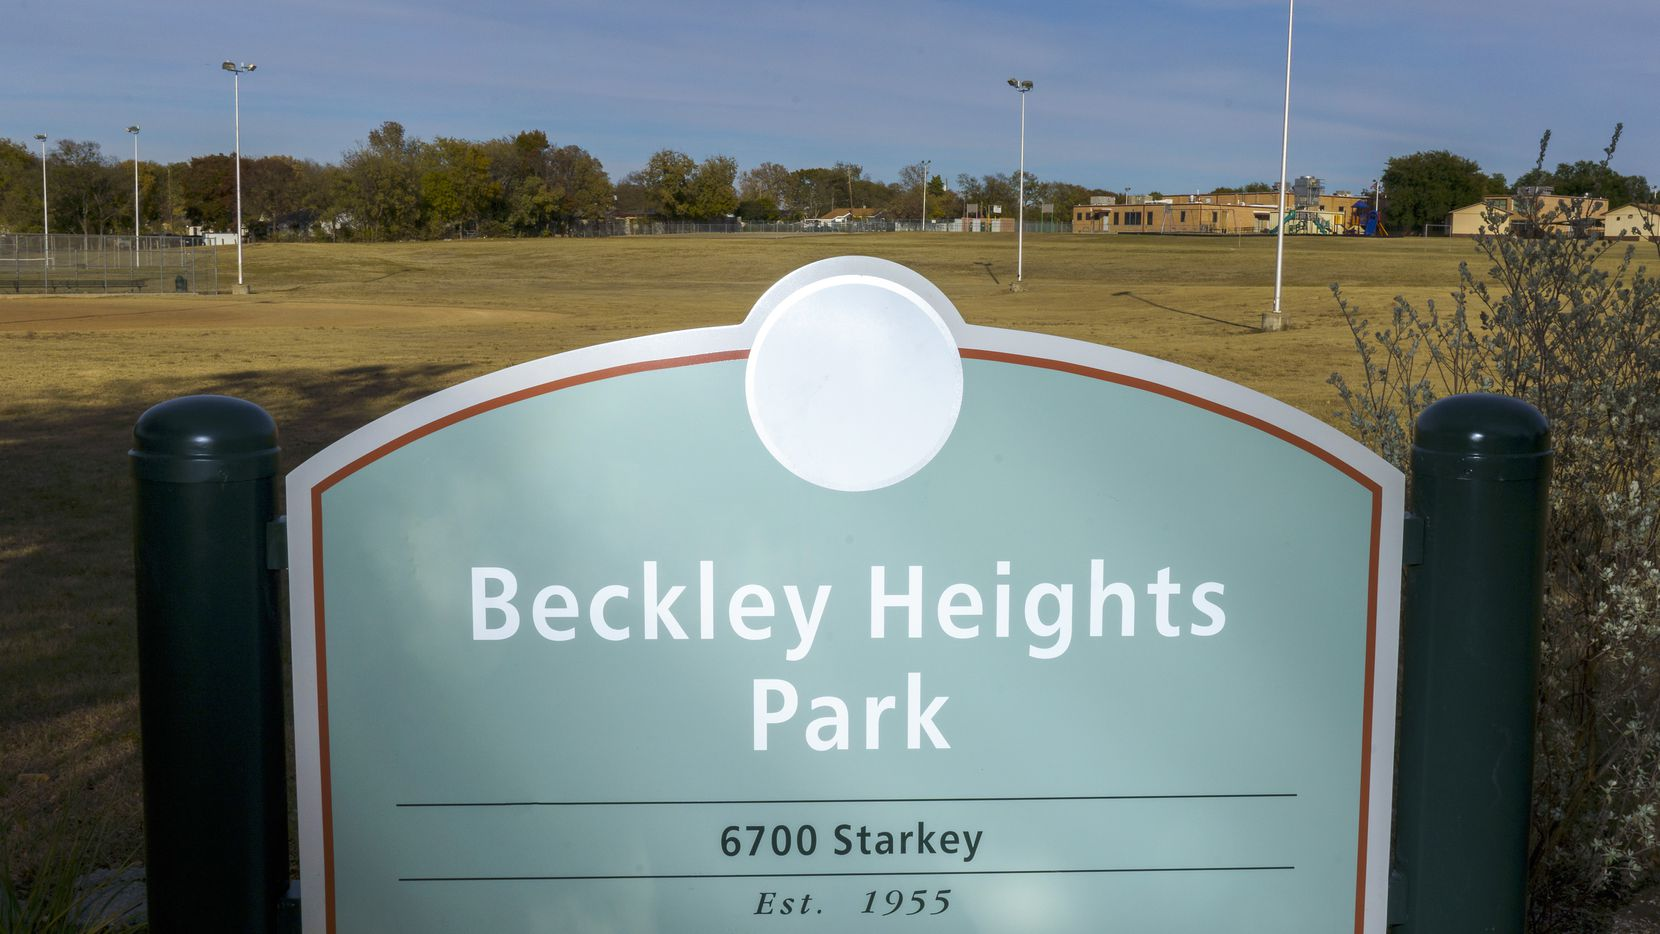 A woman was mauled in Red Bird's Beckley Heights Park, her preferred walking spot, family said.